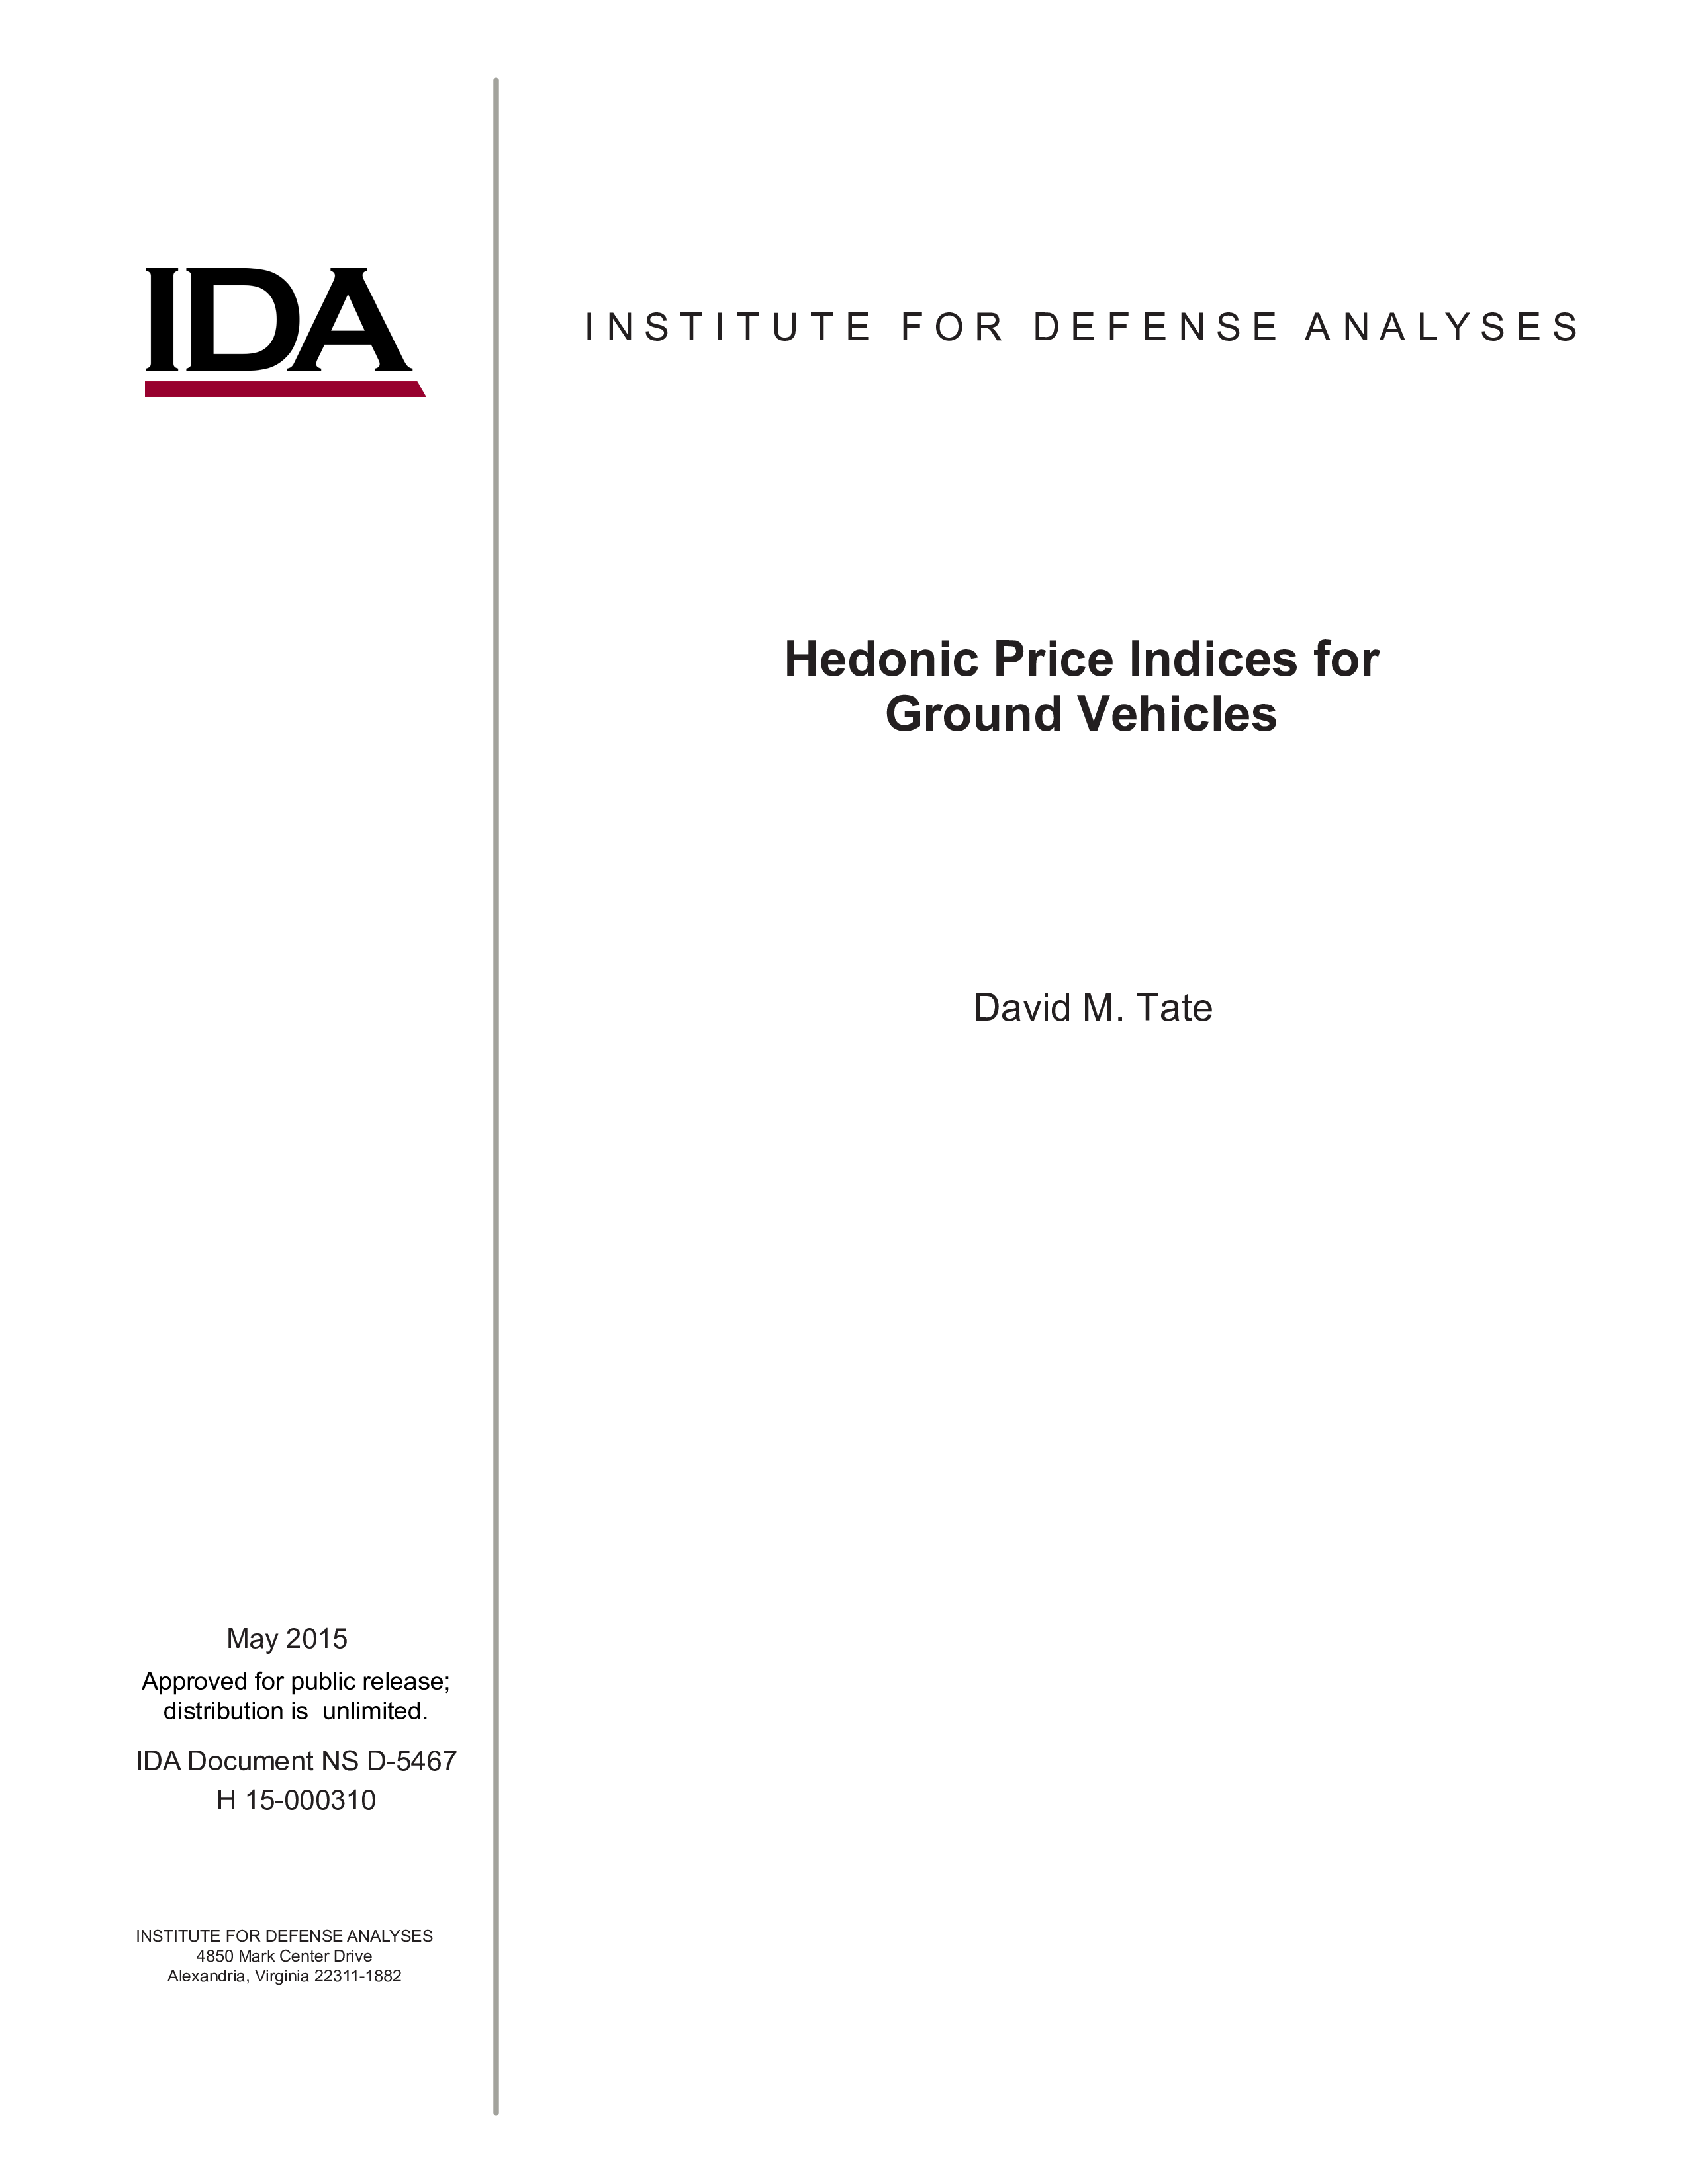 Hedonic Price Indices for Ground Vehicles